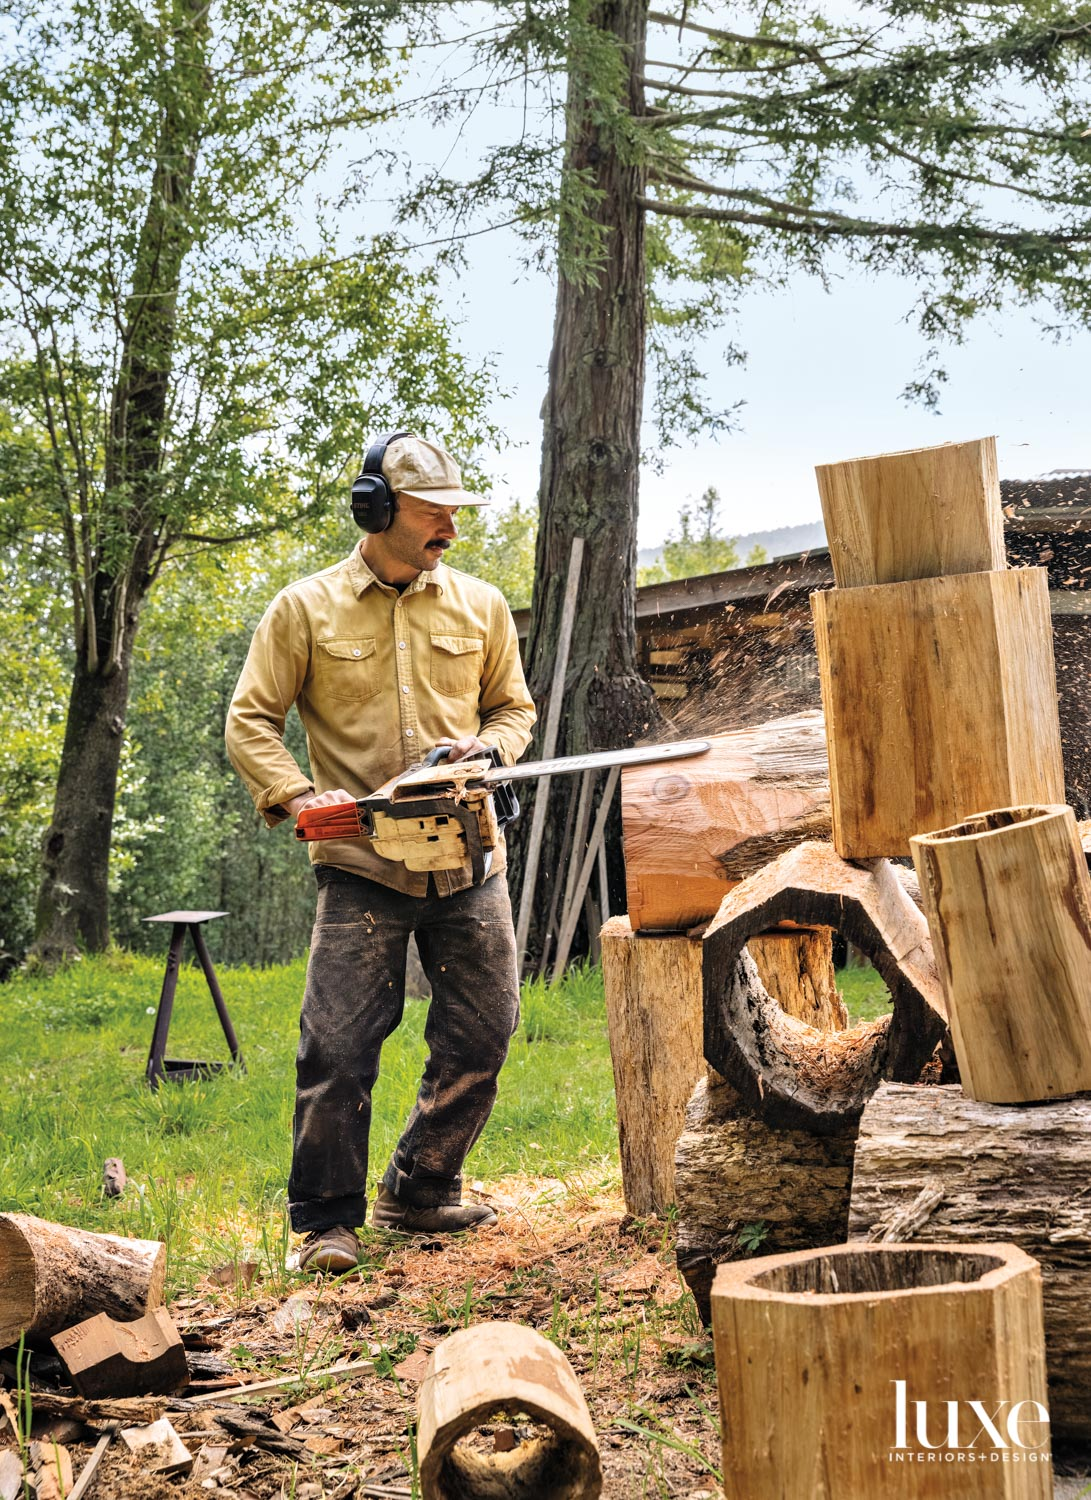 A woodworker uses a chainsaw to shape his creations.